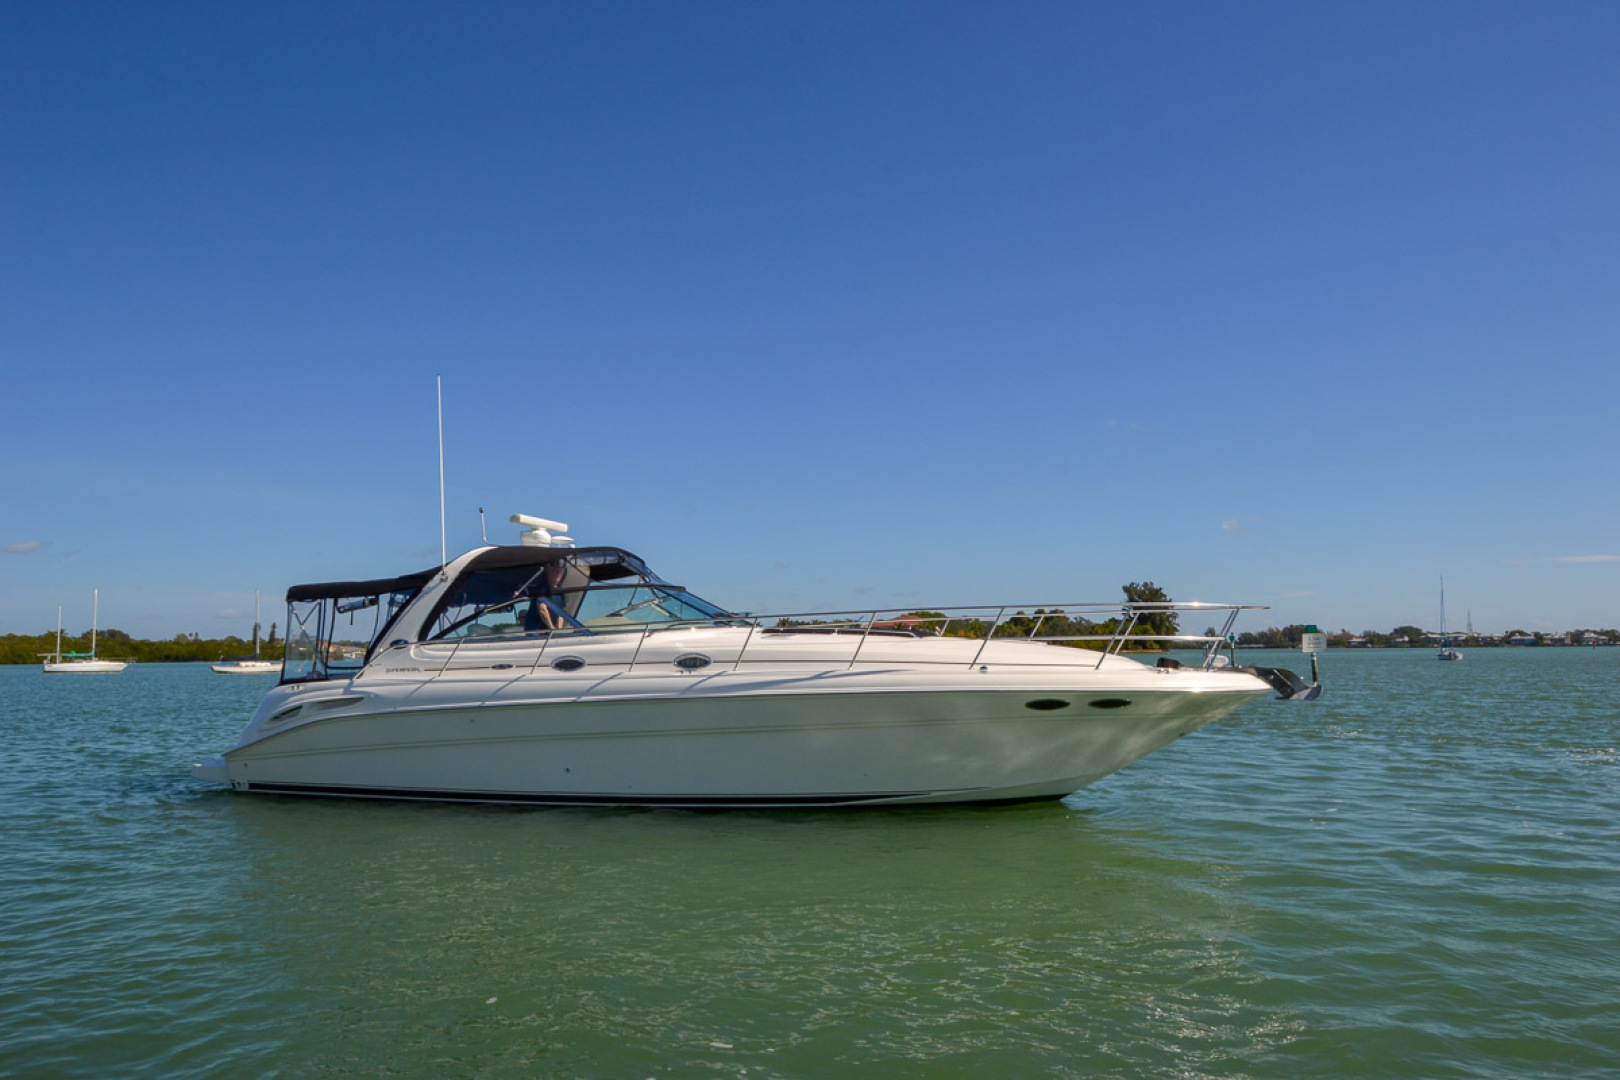 2000 Sea Ray 410 Sundancer-9.jpg